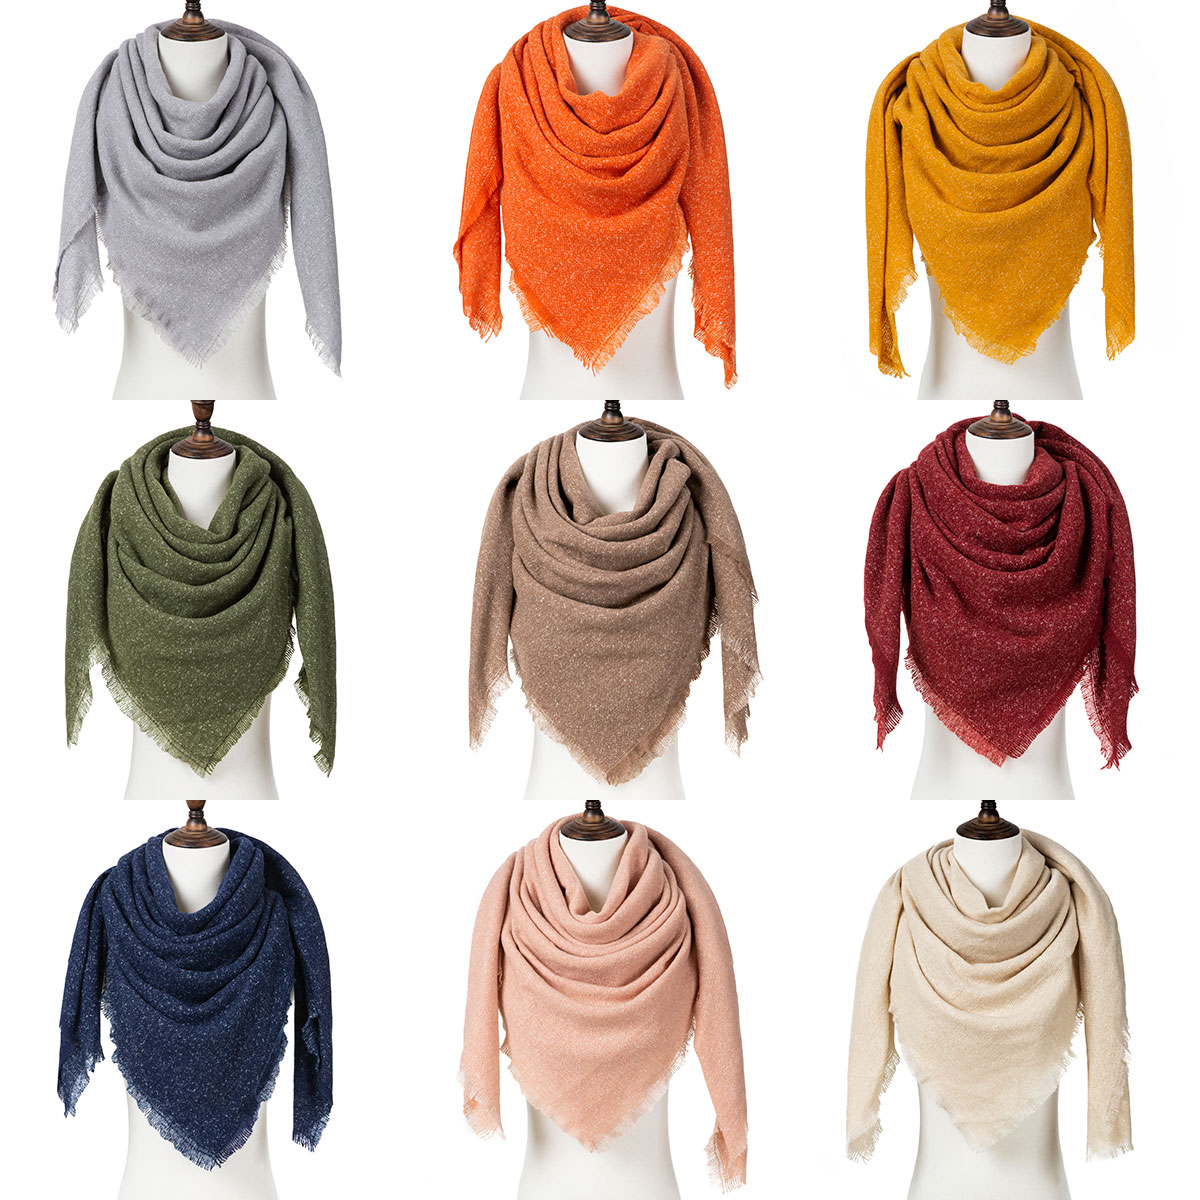 Winter Scarf Woman Warm Scarf Solid Color Winter Woman Shawl Fashion Knitted Triangle Scarves